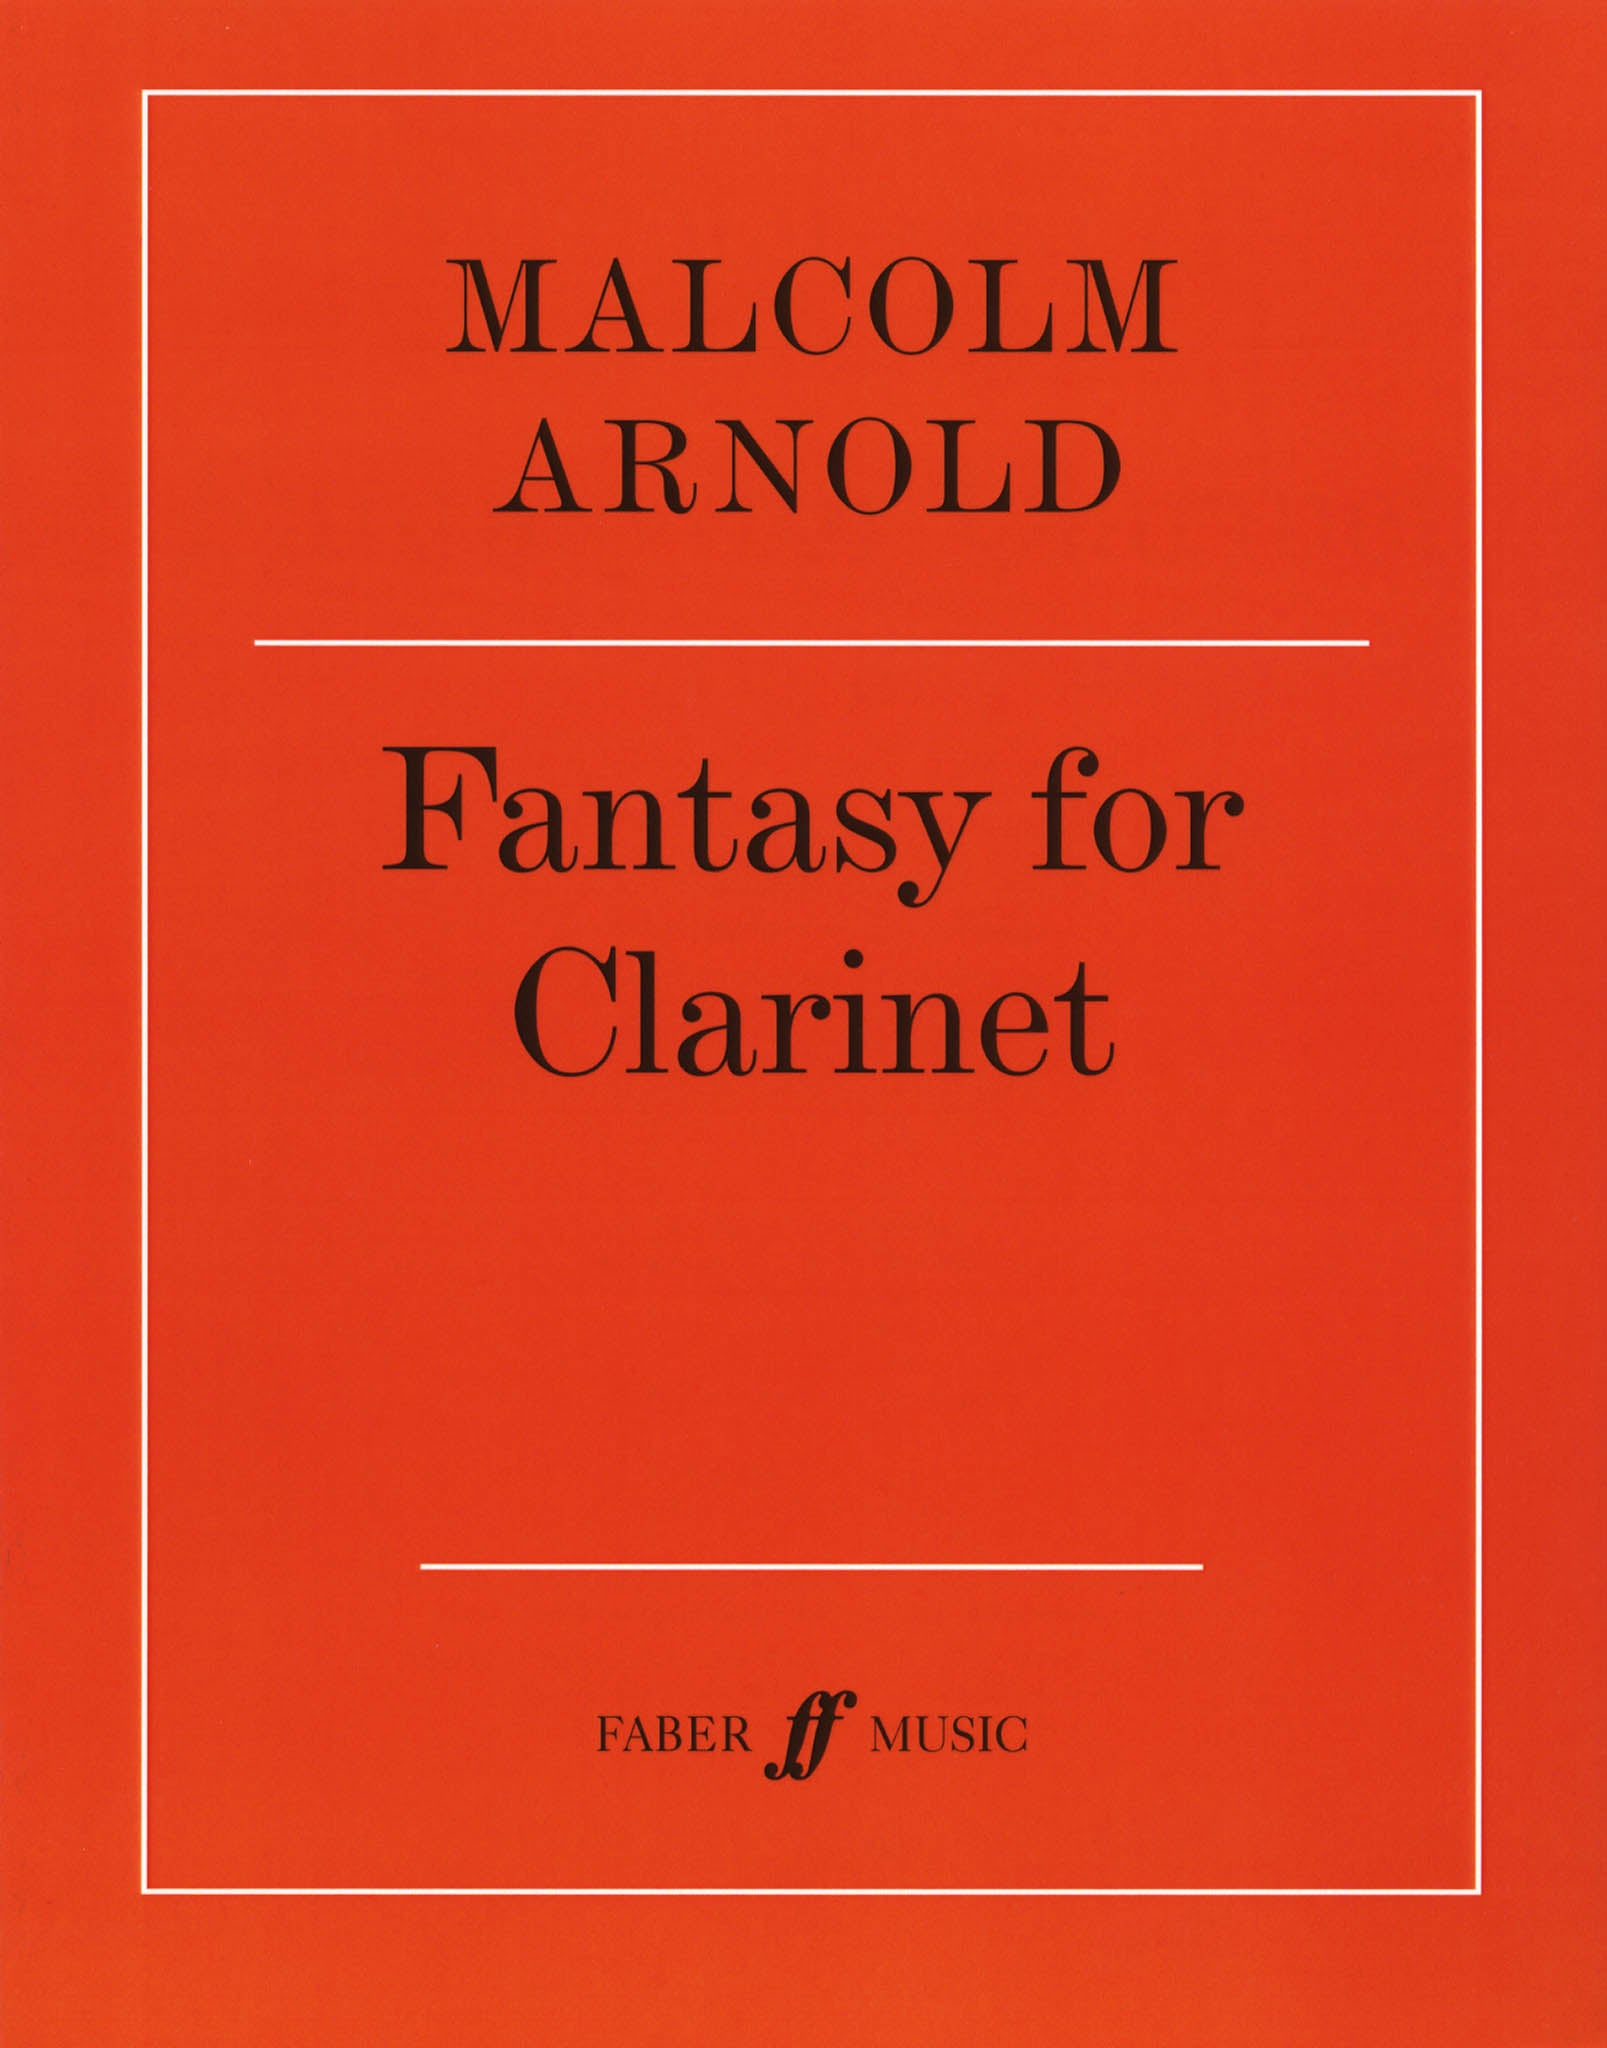 Arnold Fantasy for Clarinet, Op. 87 Cover